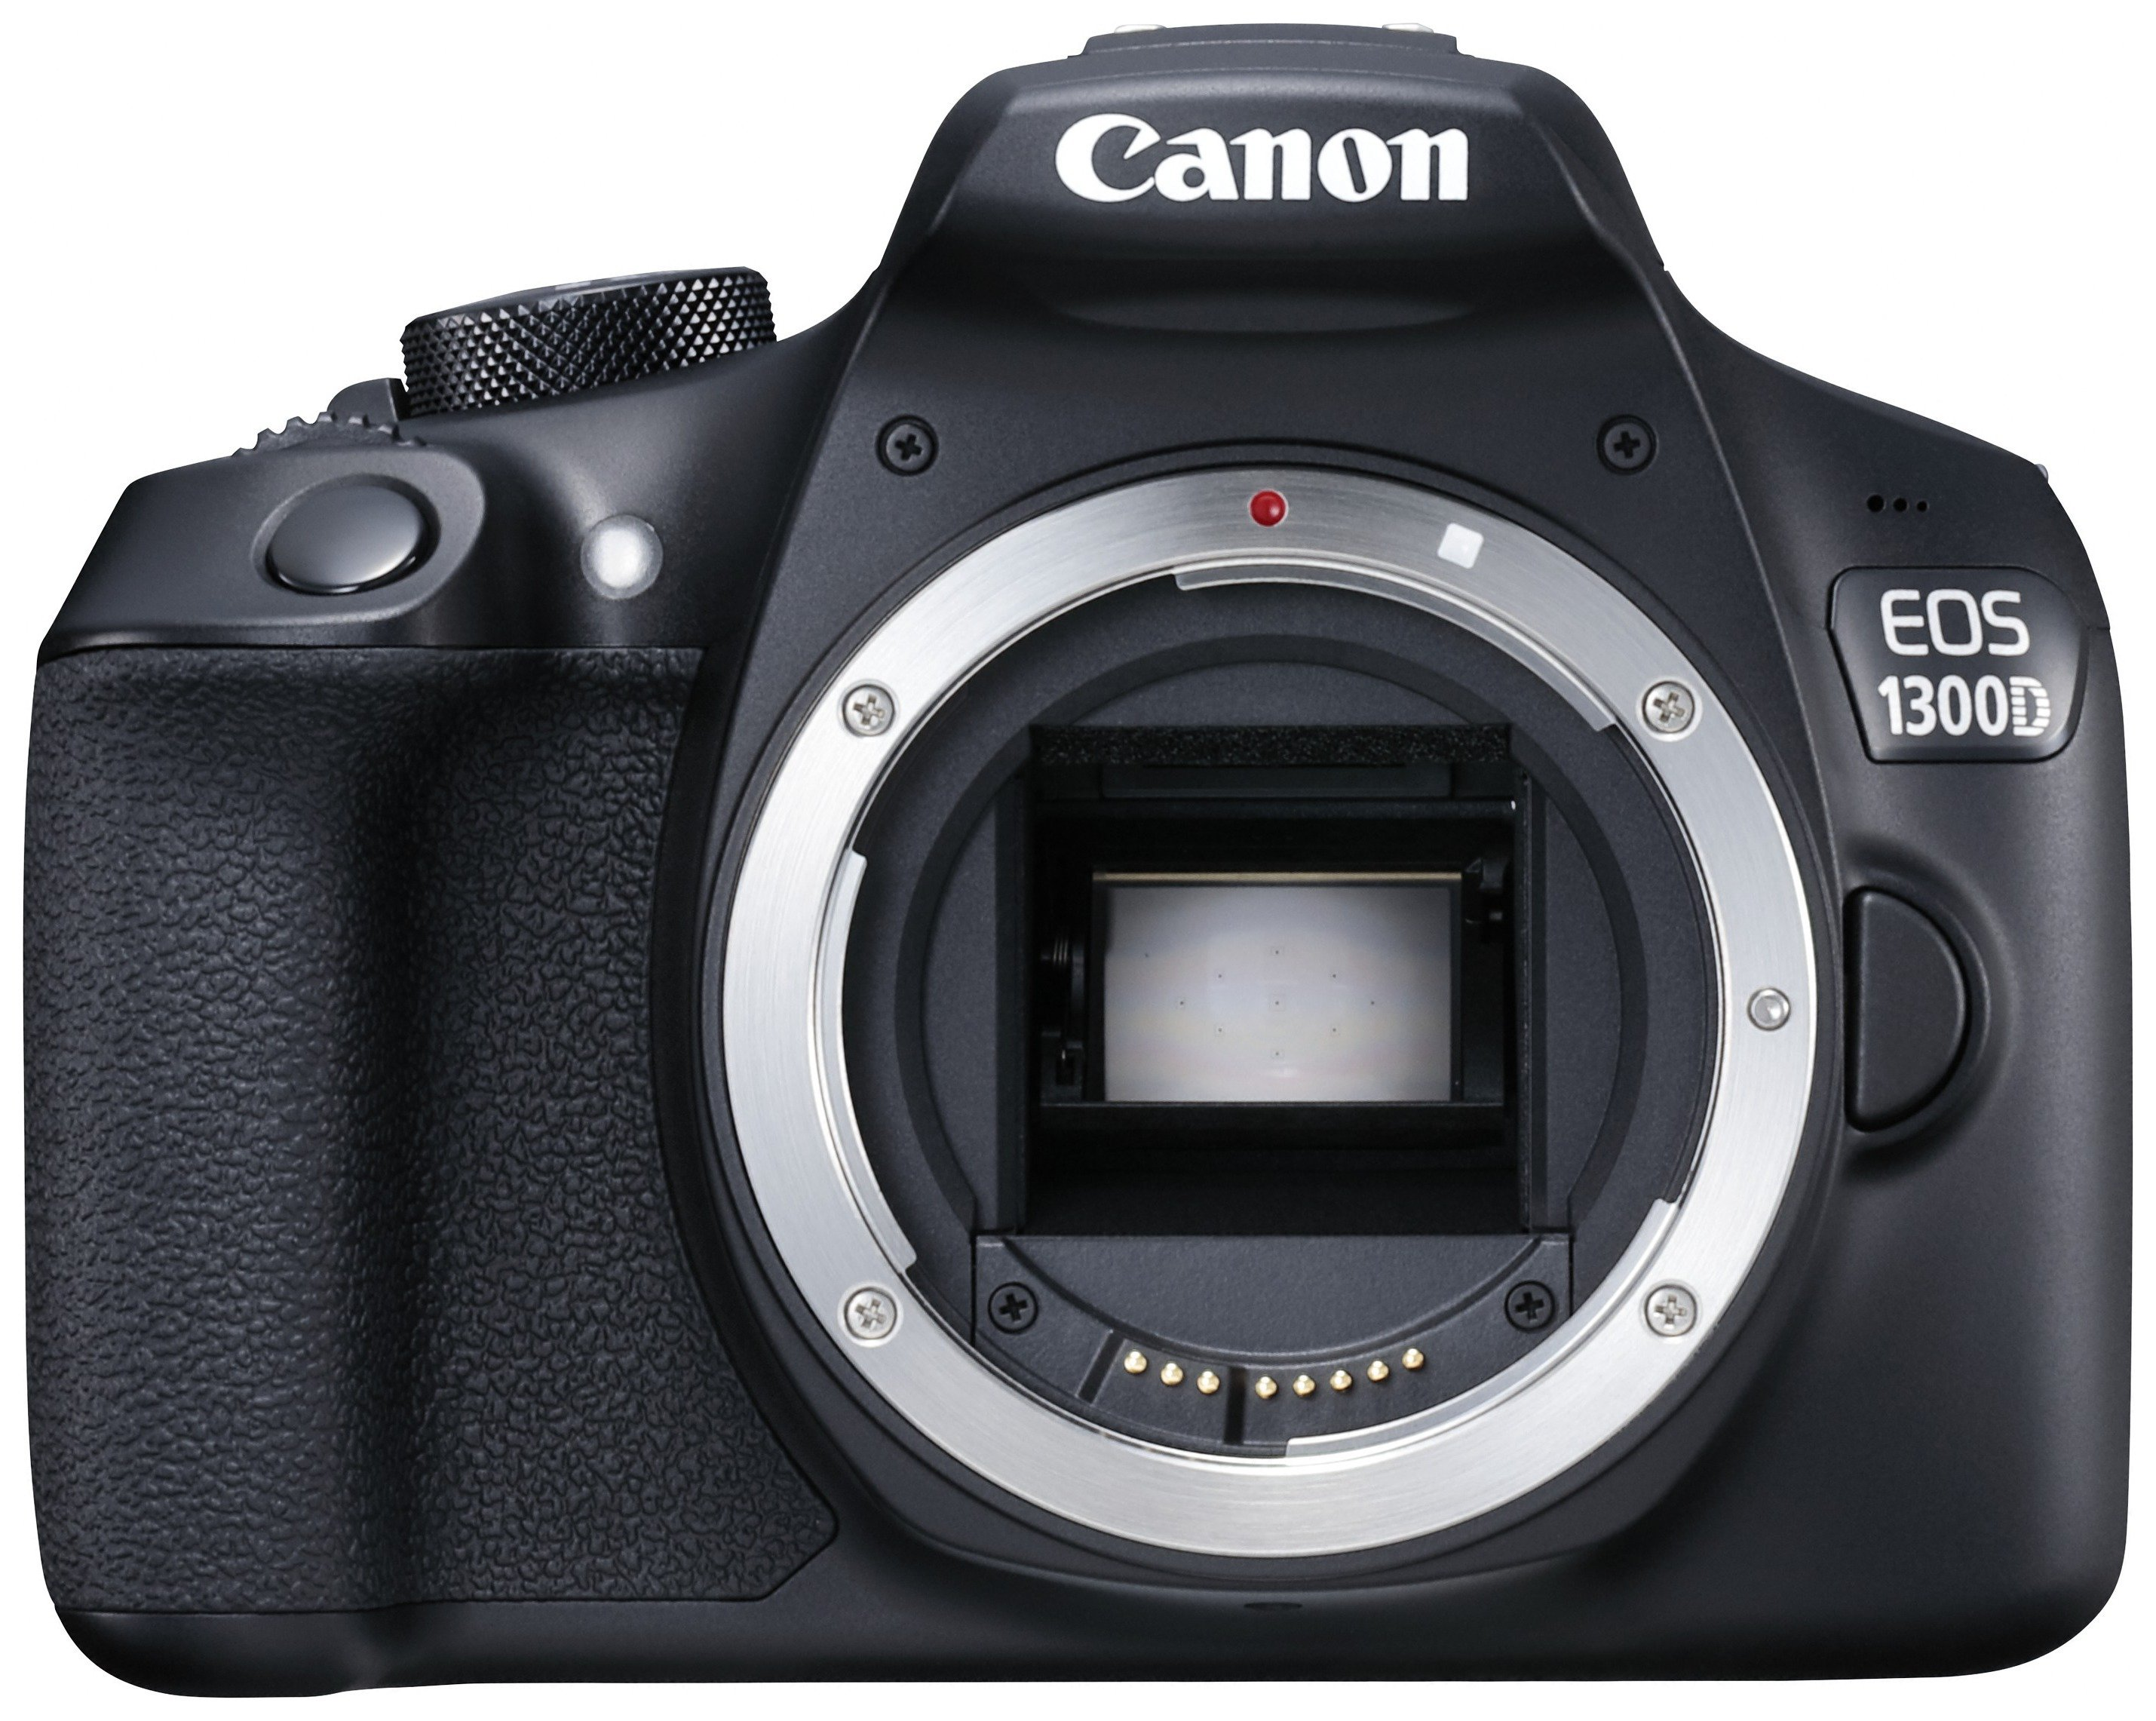 Image of Canon EOS 1300D DSLR Body.